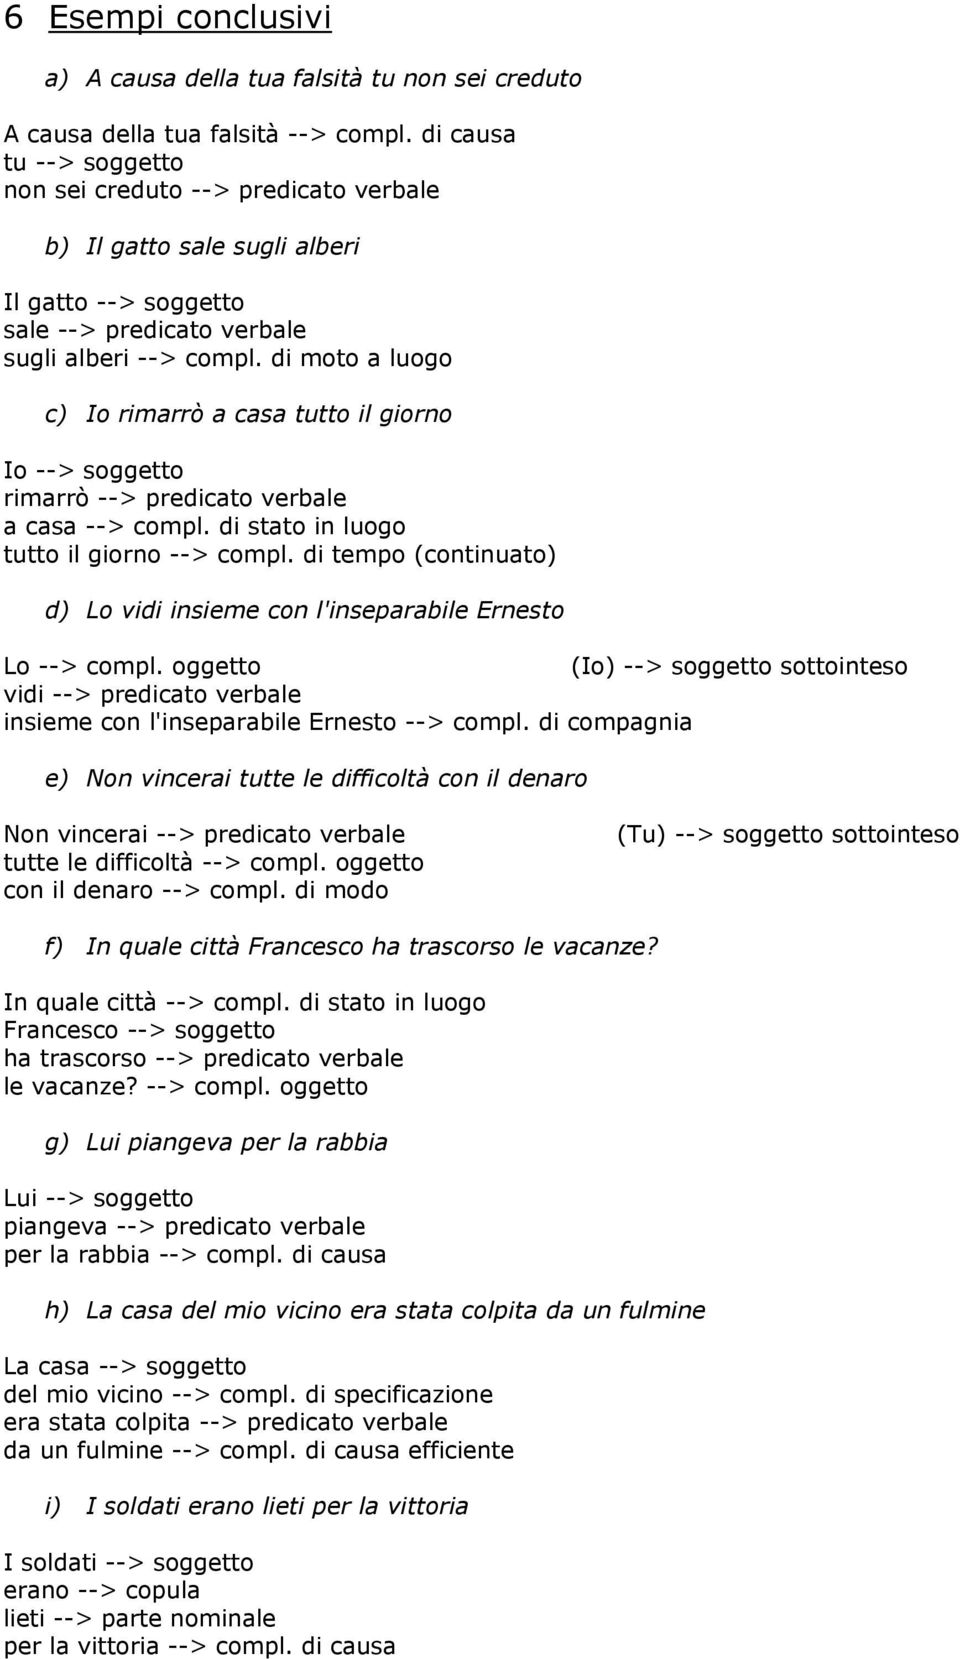 Richiami Di Analisi Logica Pdf Download Gratuito